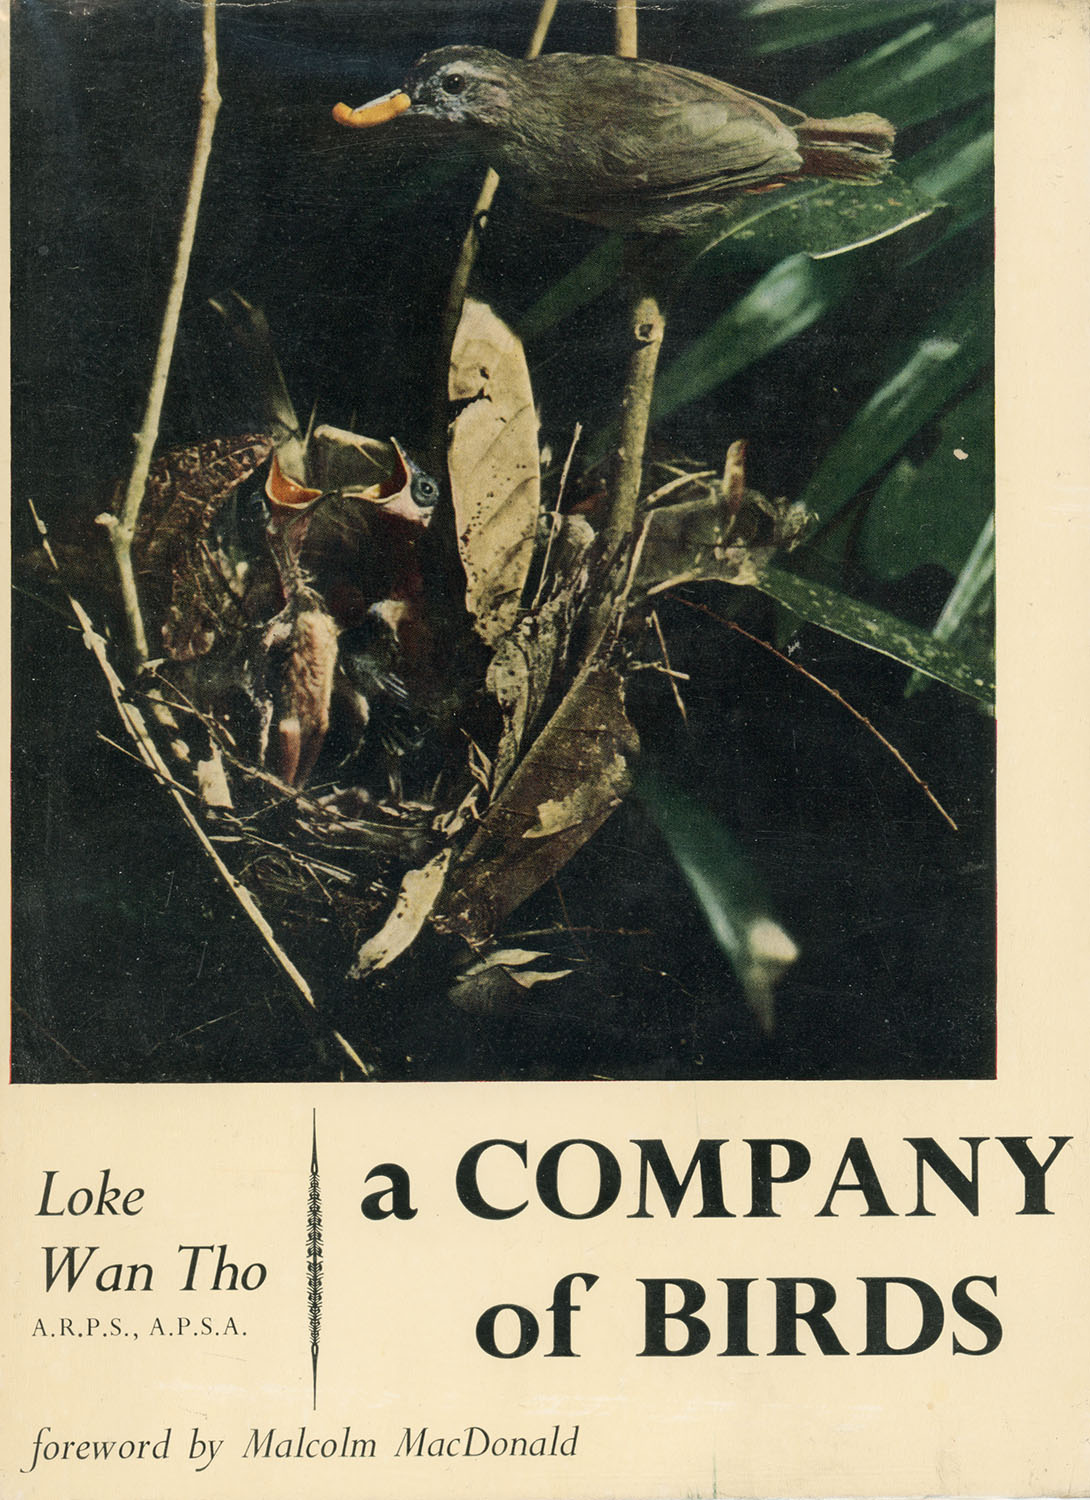 Loke Wan Tho – A Company of Birds